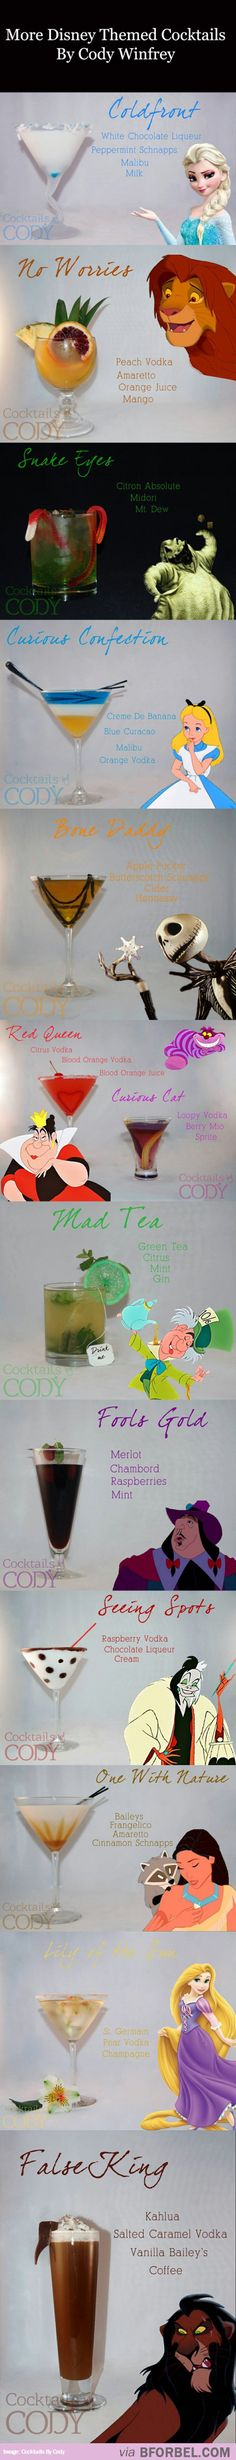 12 More Disney-Themed Cocktails… @Emily Schoenfeld Schoenfeld Schoenfeld Schoenfeld Schoenfeld Corkum  - the No Worries was made for us